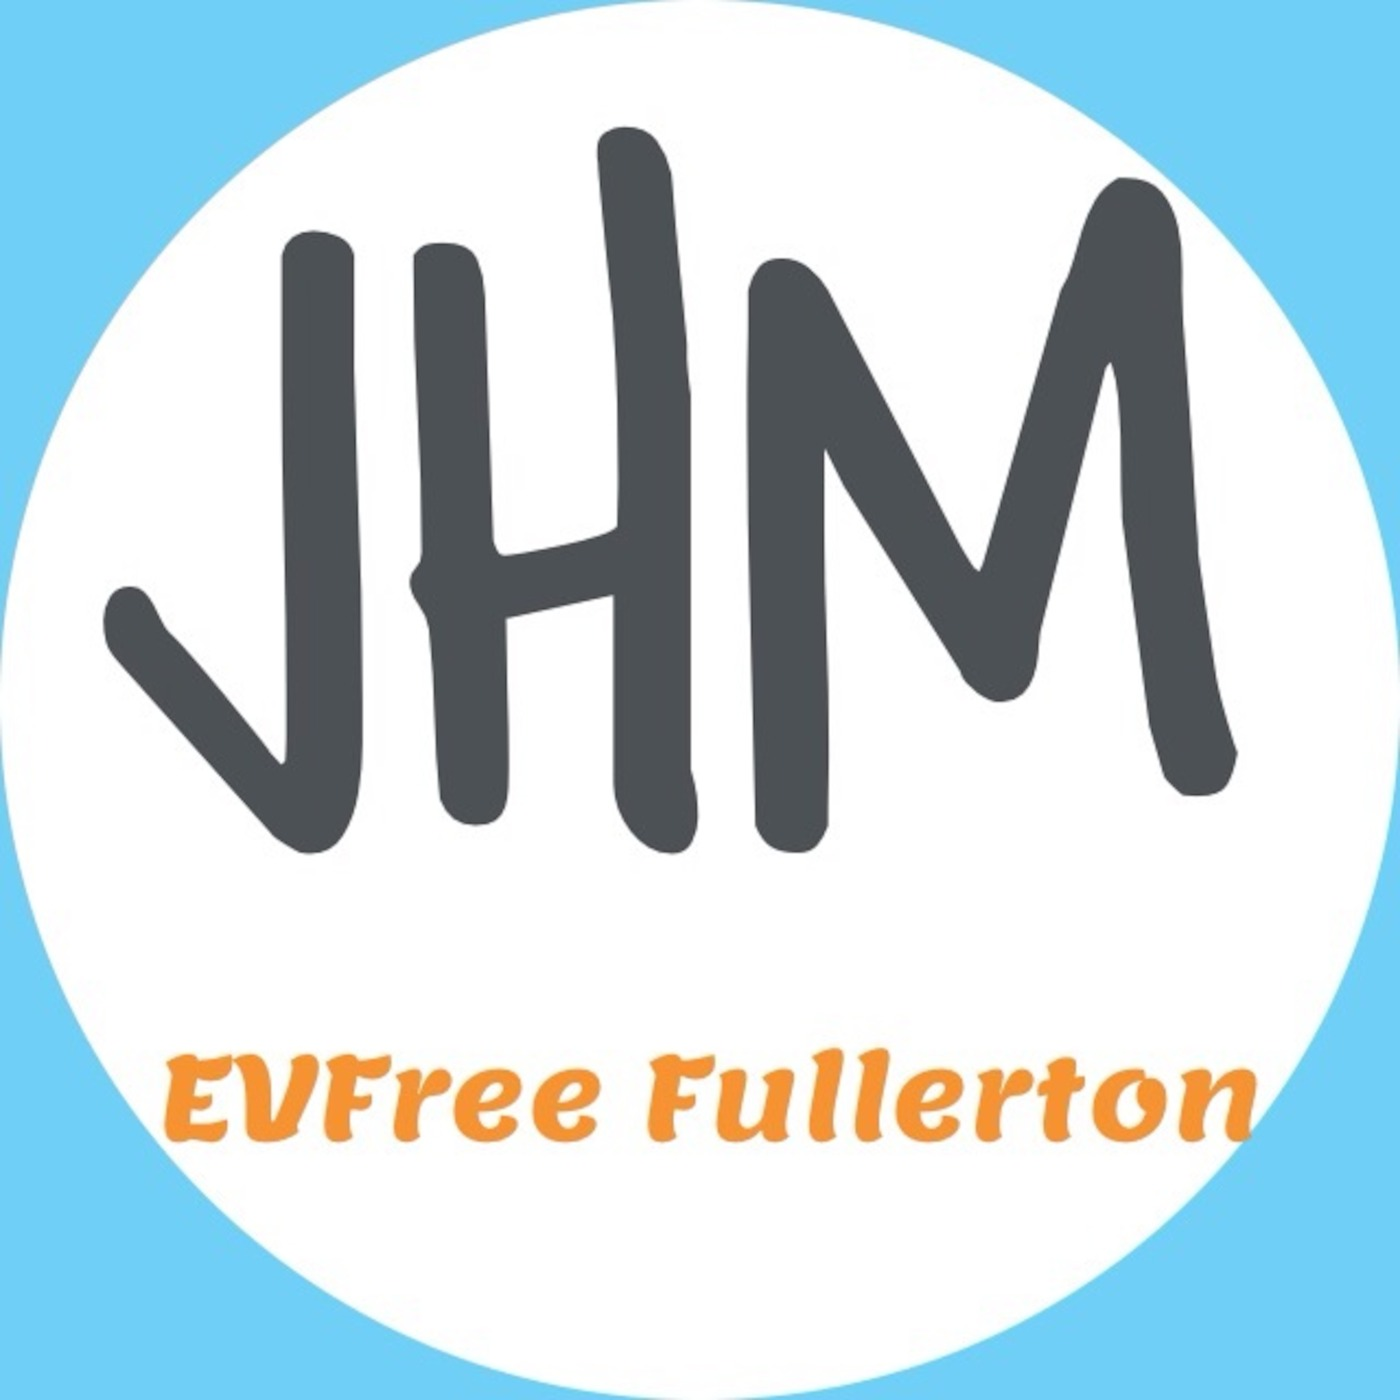 Evfree Fullerton Junior High